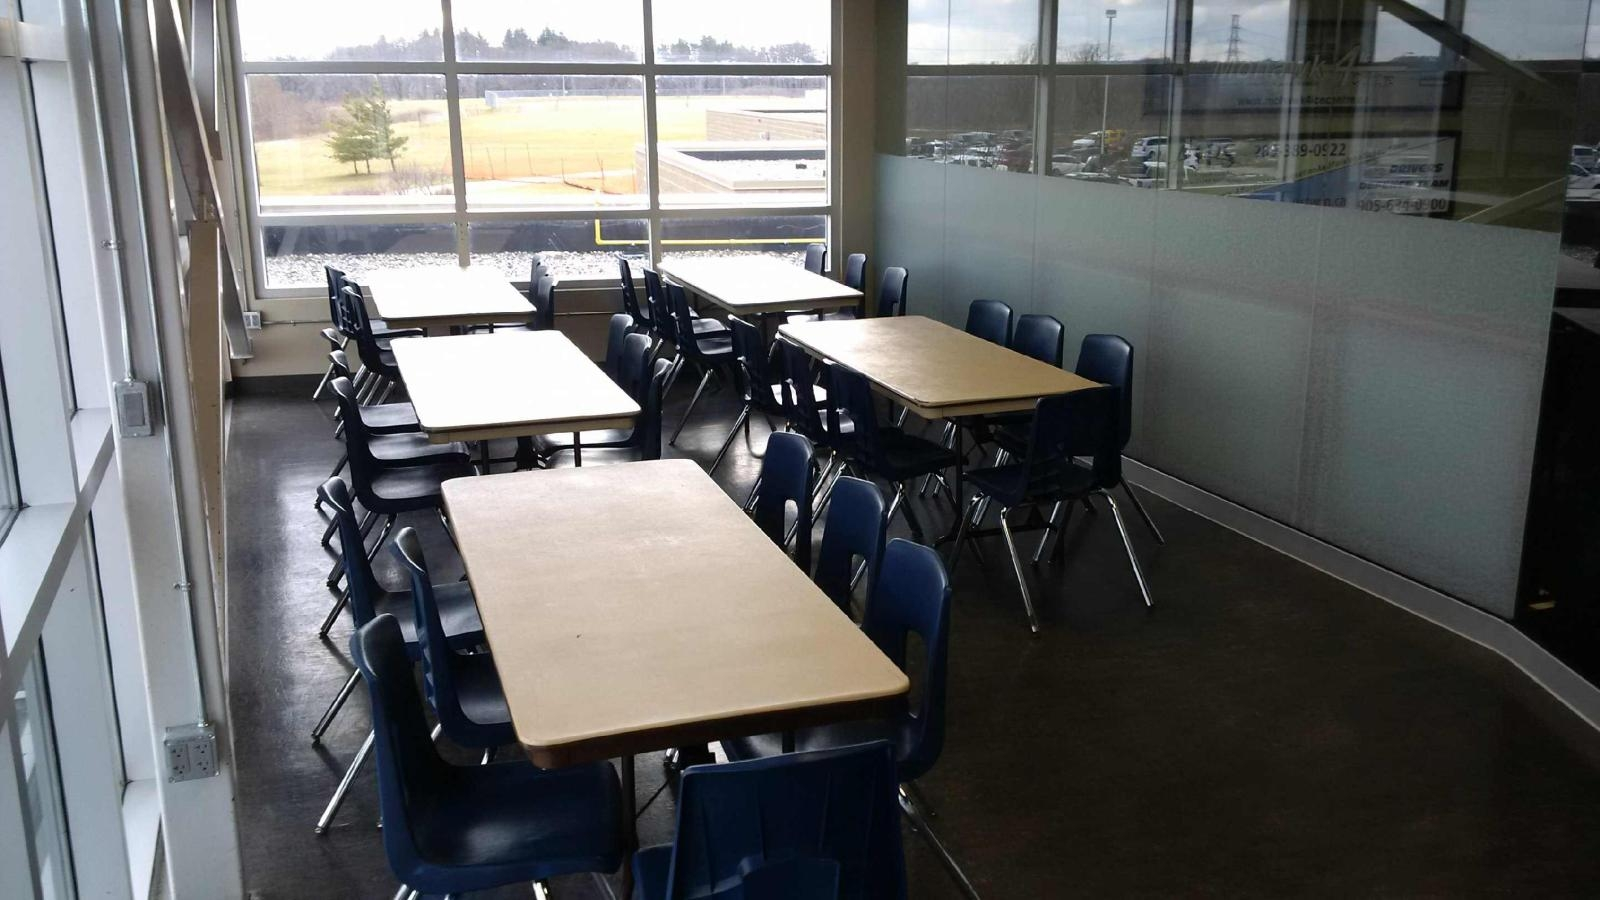 Cafeteria-style seating for 32 -- great for team parties/birthday parties.  Space for buffet table near entrance (unseen).